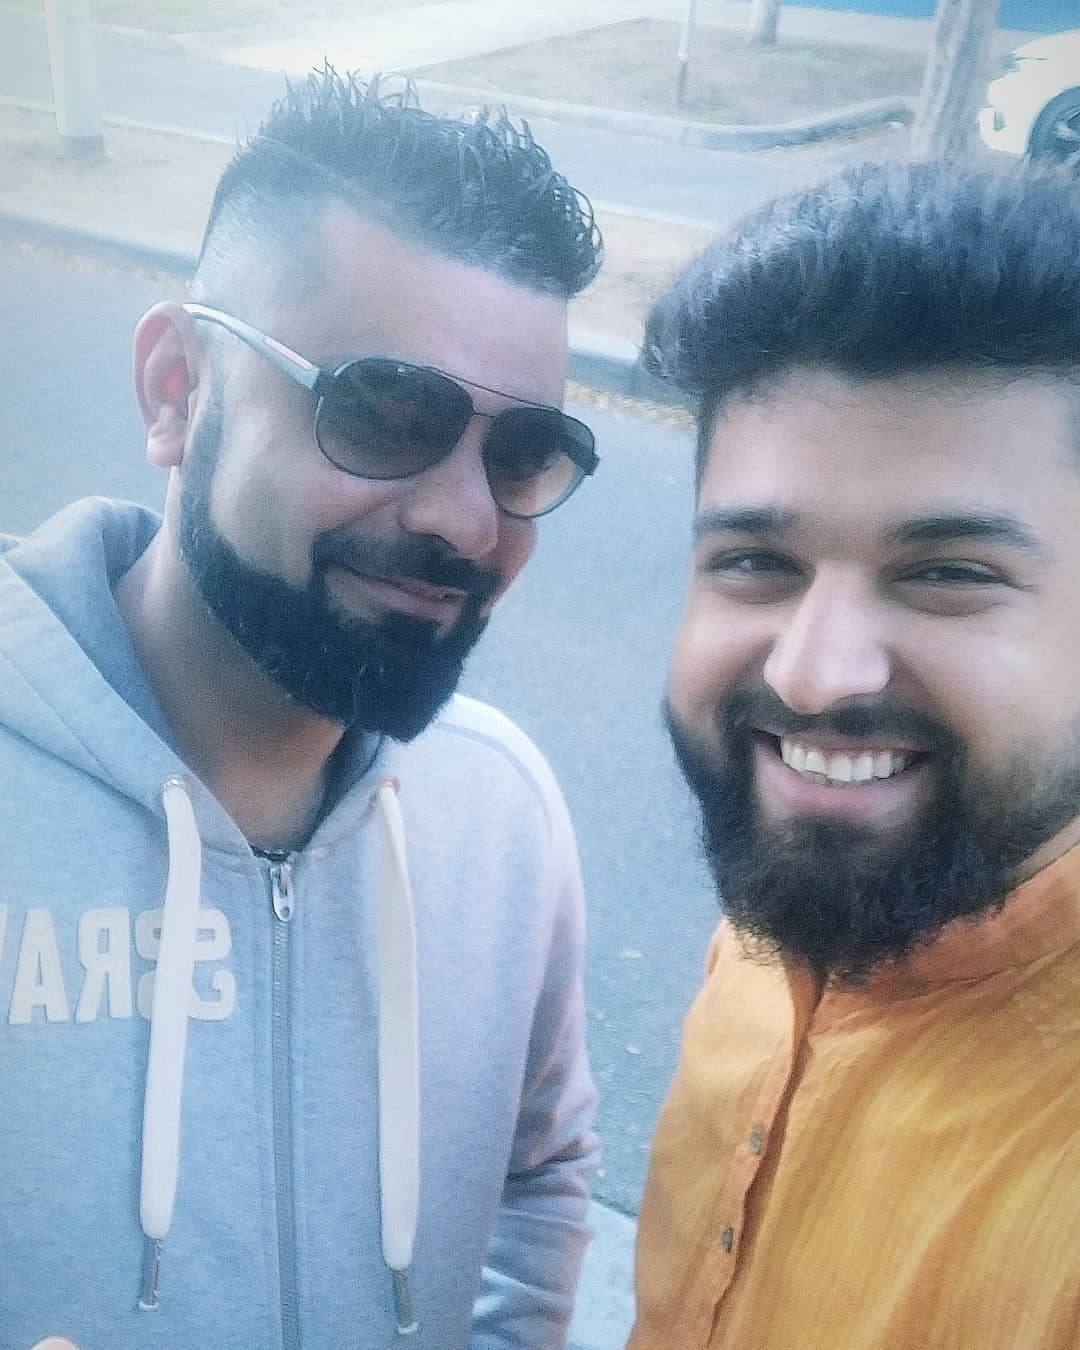 First I thought I met @virat.kohli 🤩 but he is @bhavu.darji 🥺 . . . #bcci #viratkohli #cwc2019